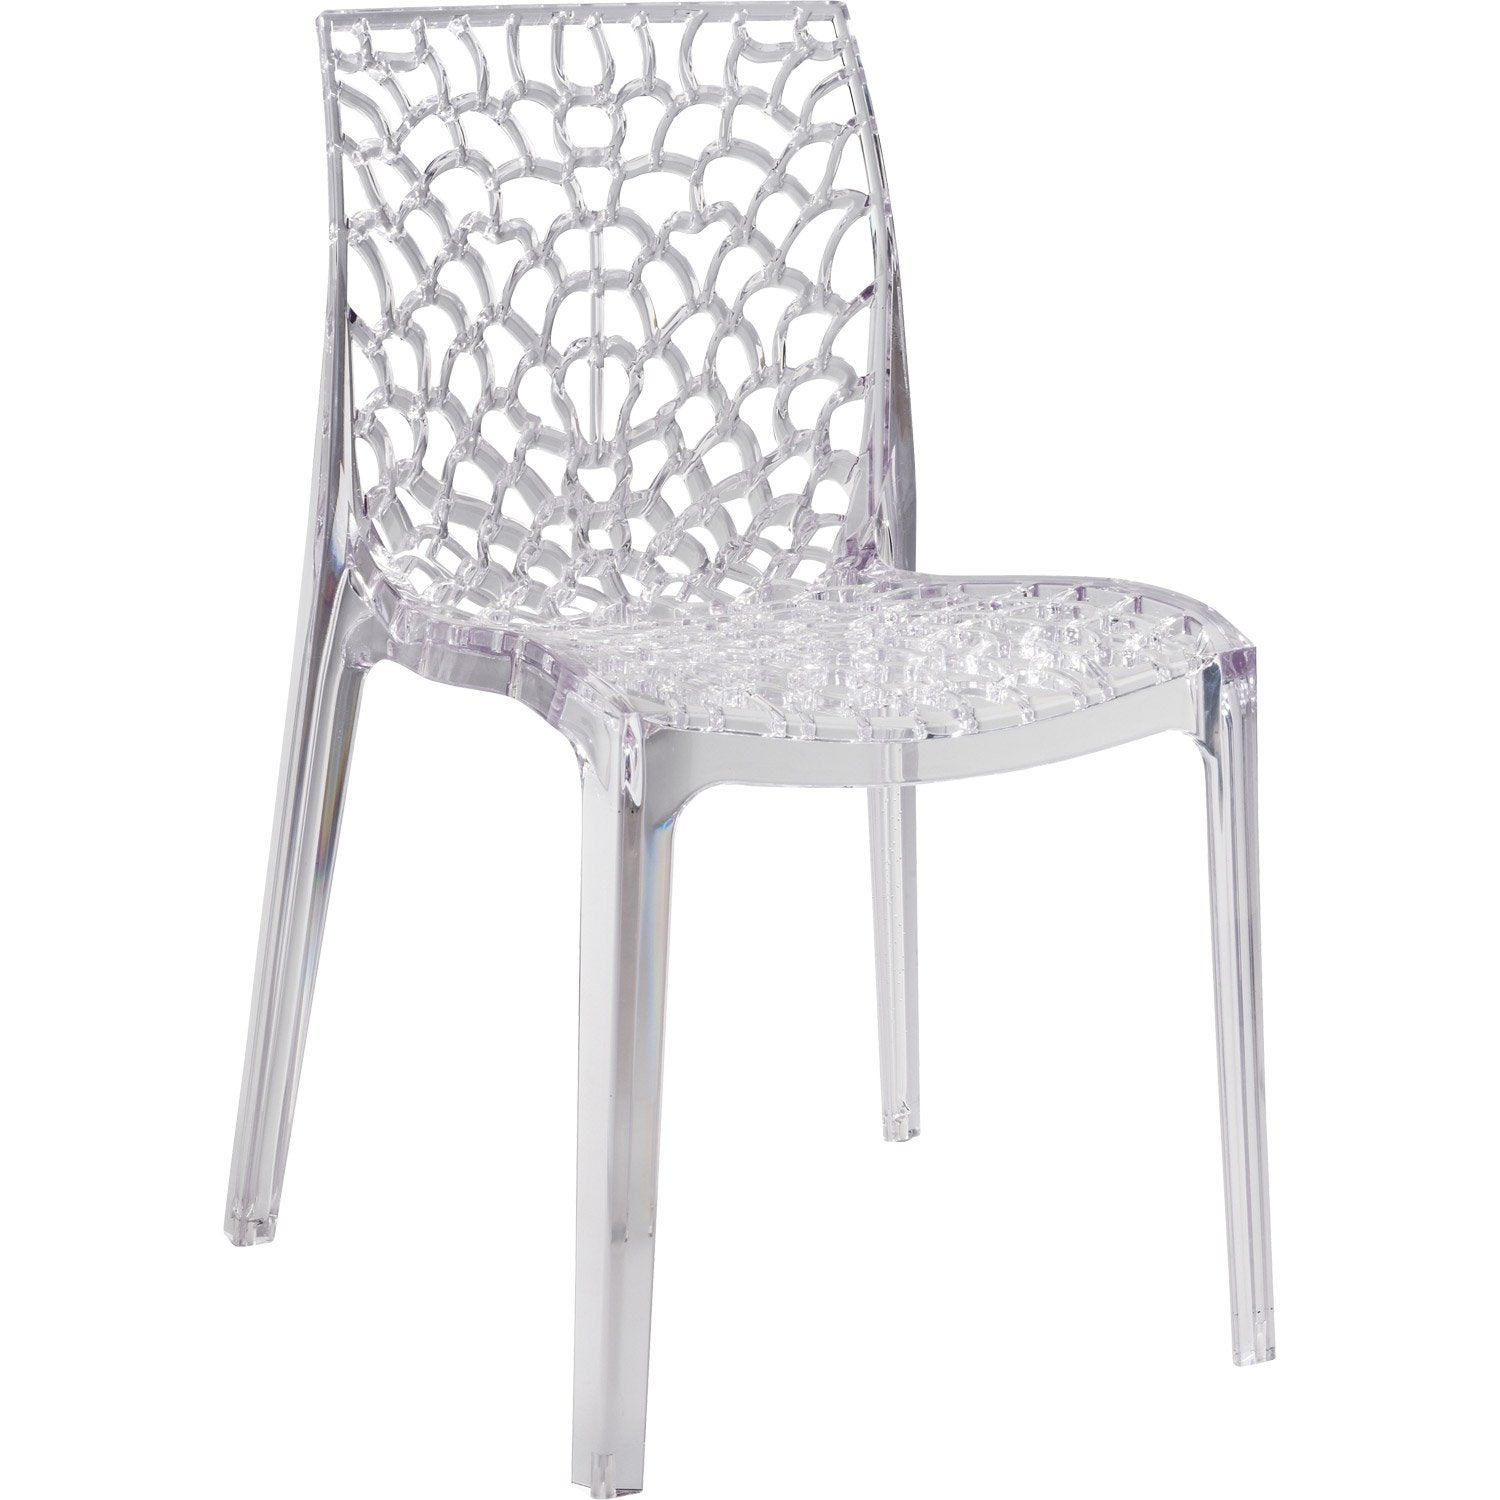 Chaise de jardin en polycarbonate grafik lux transparent for Chaise jardin leroy merlin